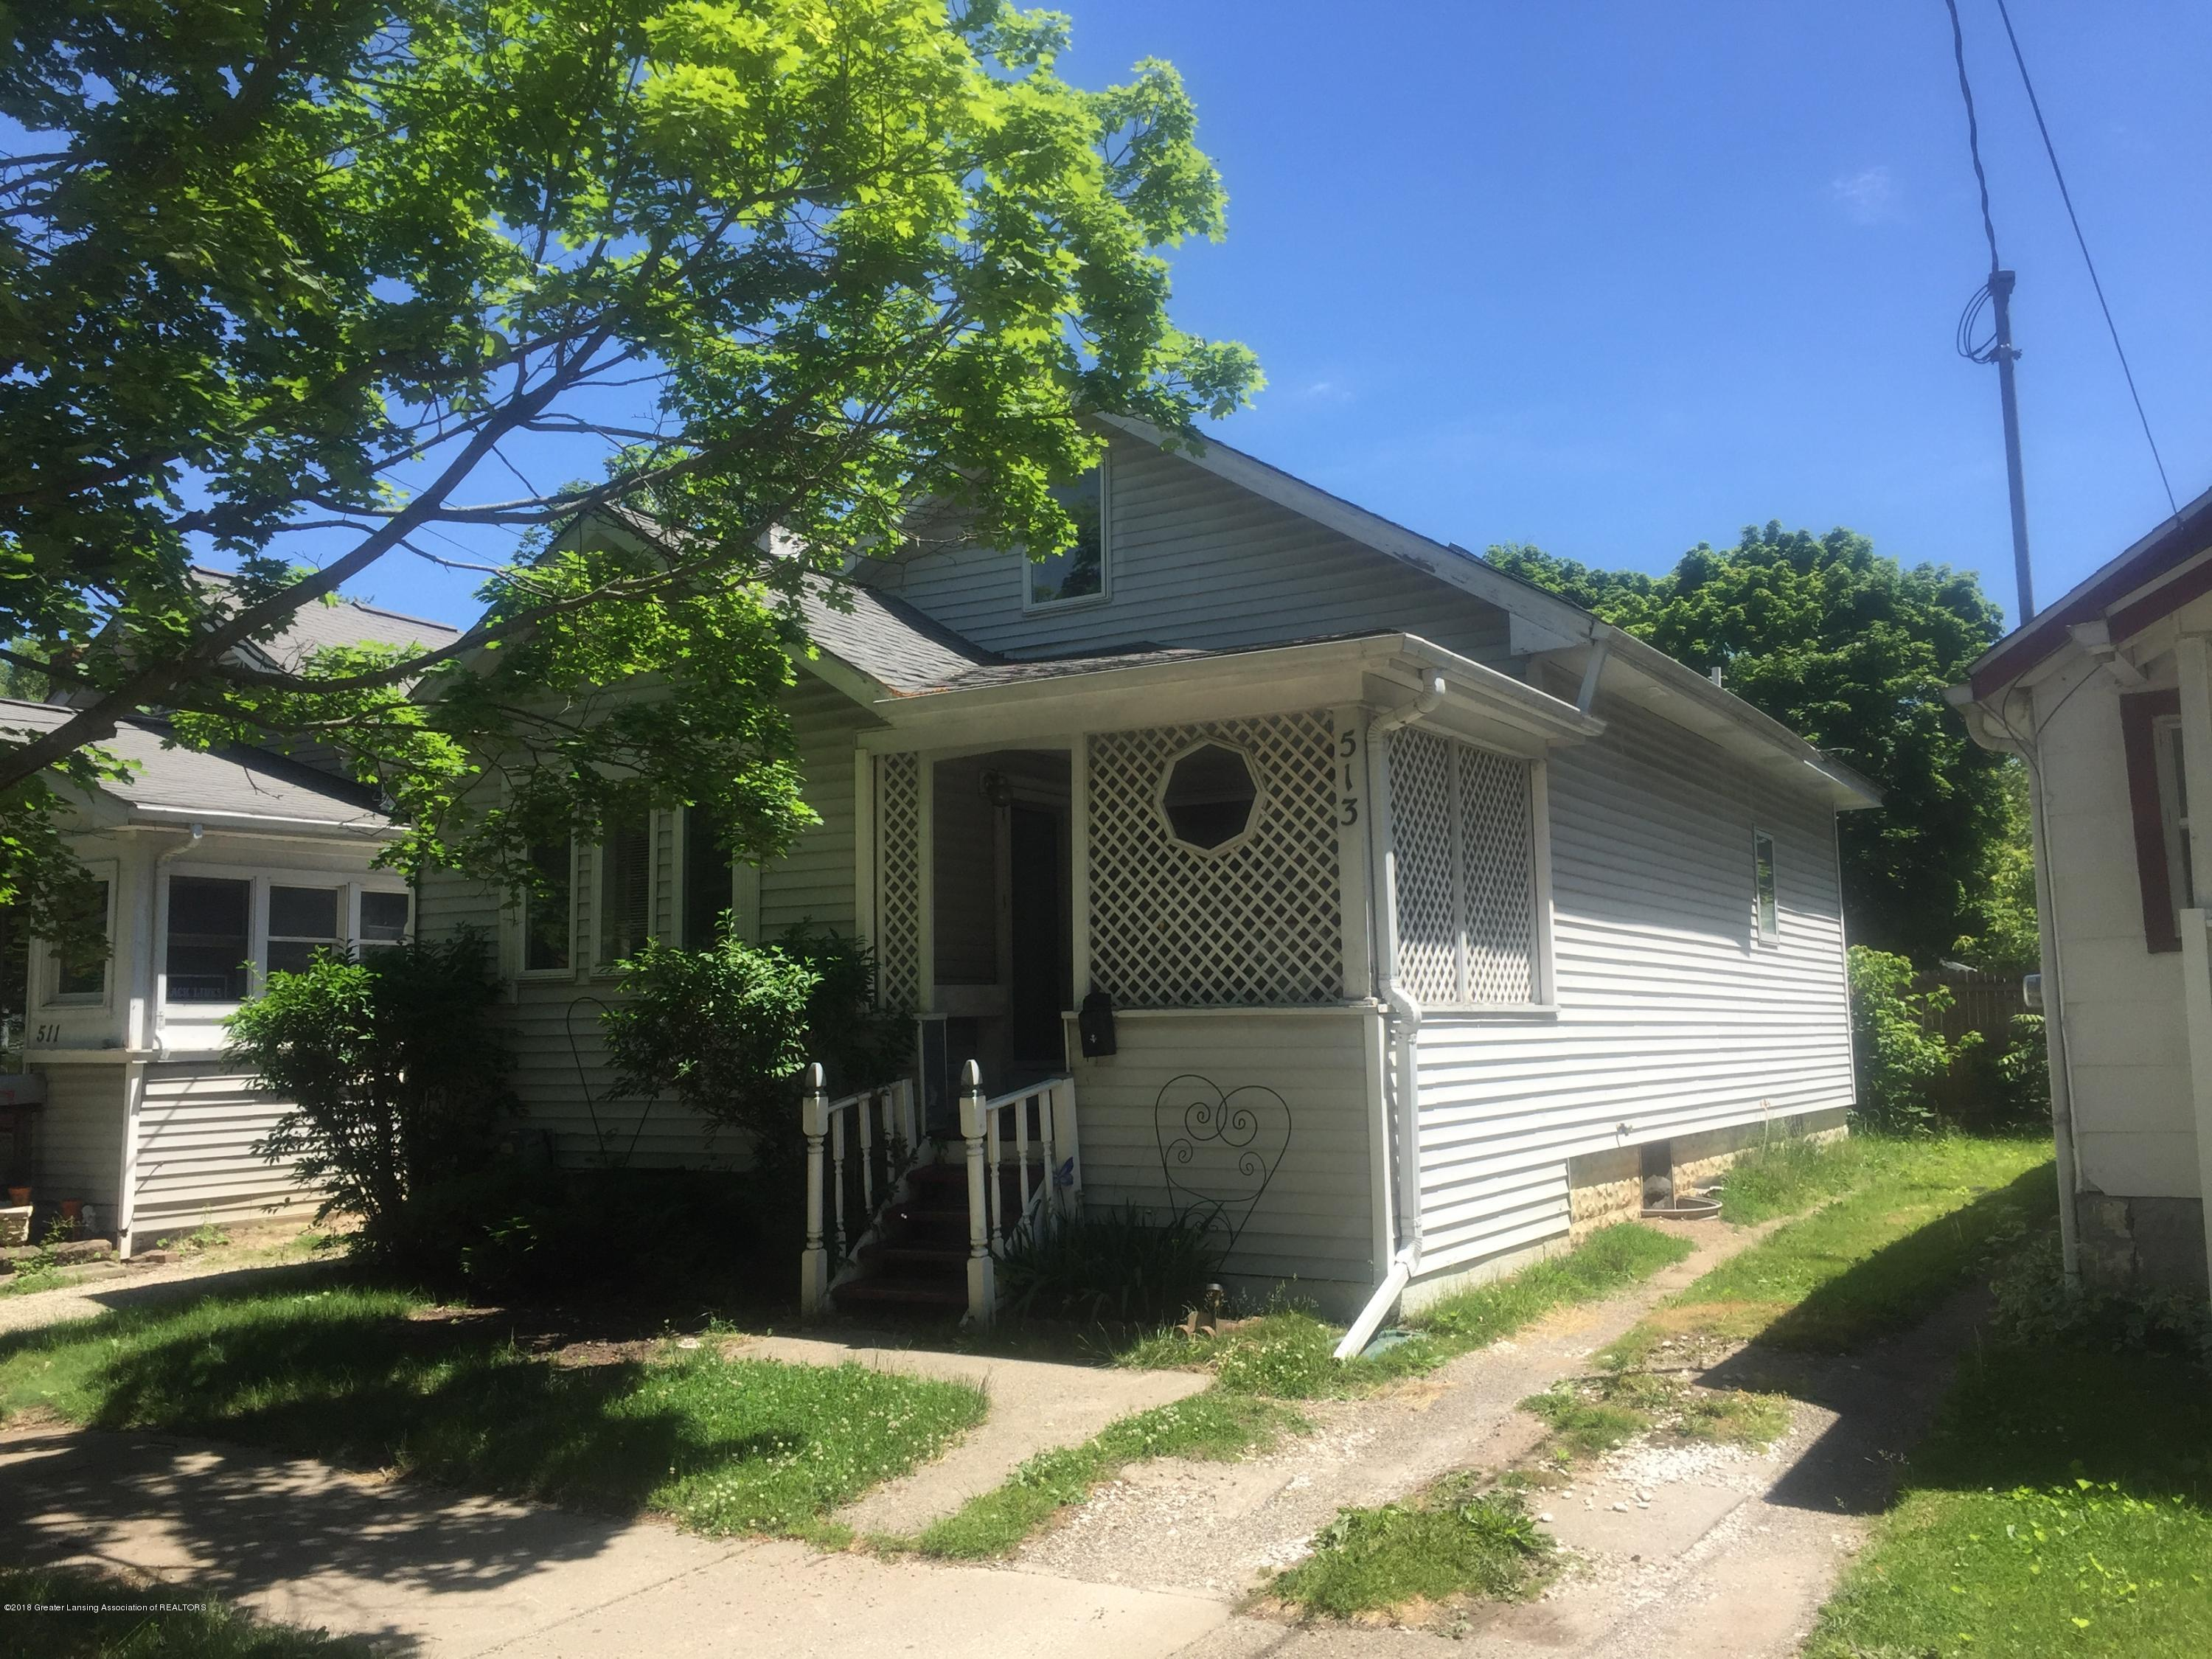 513 S Clemens Ave - FrontExterior2 - 29